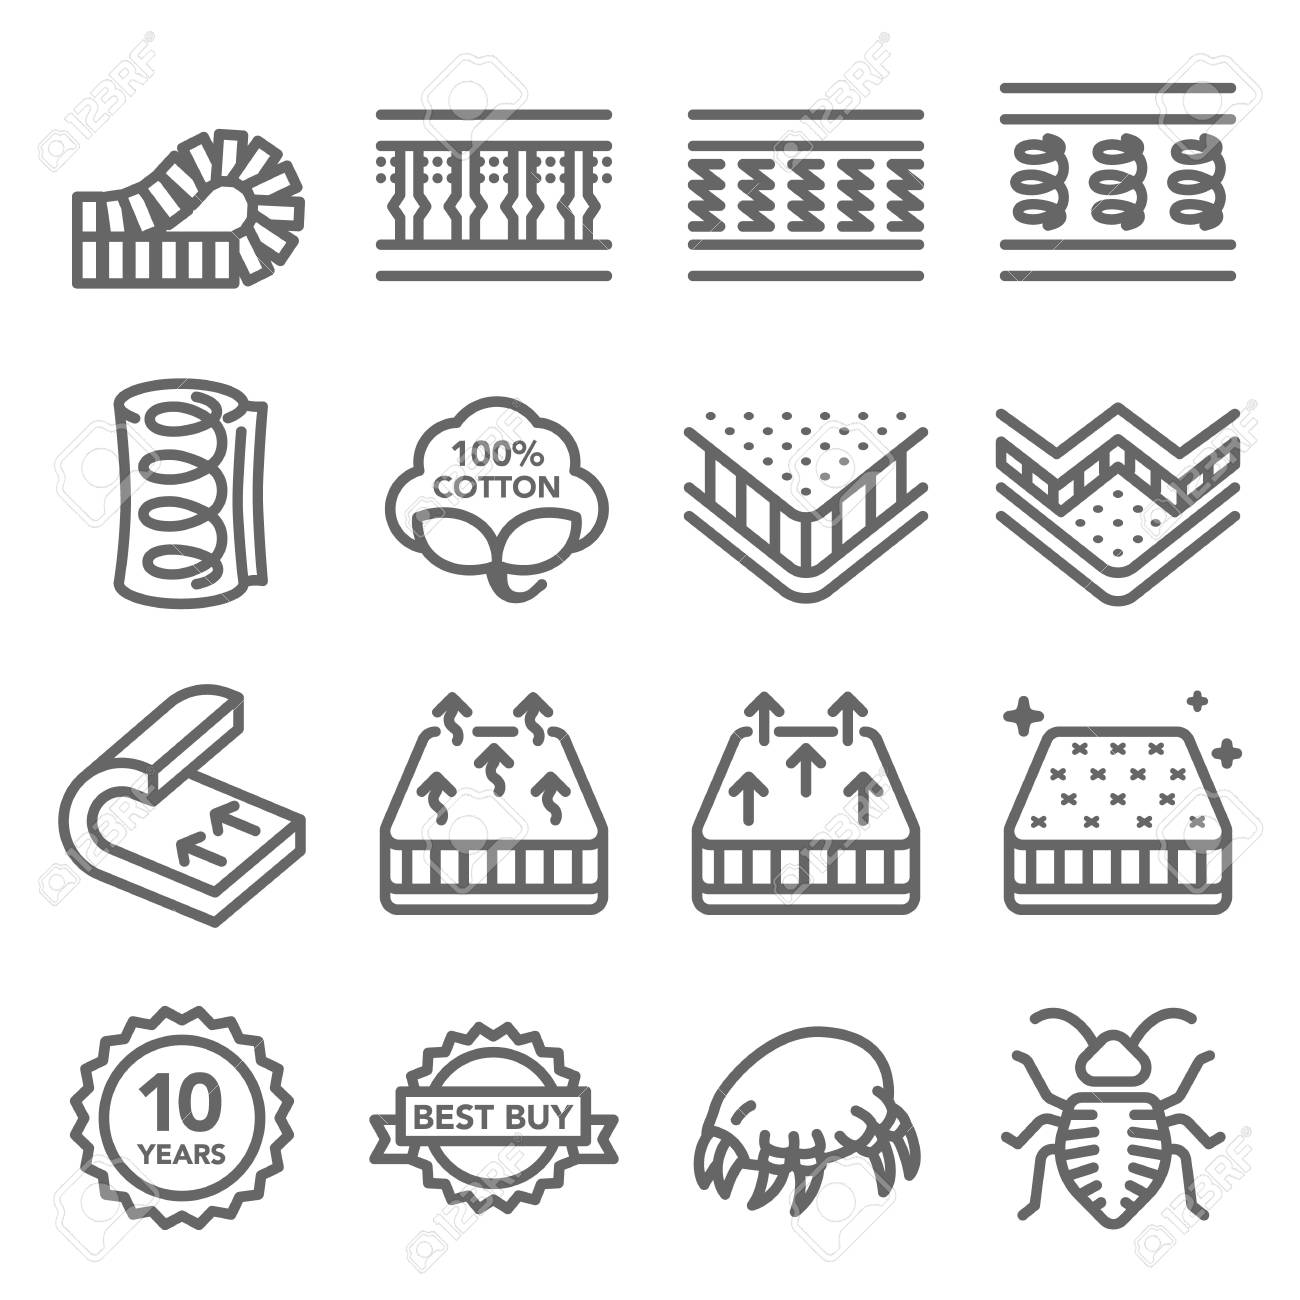 Mattress Vector Line Icon Set. Contains such Icons as Cotton, Dust mite, Bed Bug, Bed layer Inside and more. Expanded Stroke - 119955046